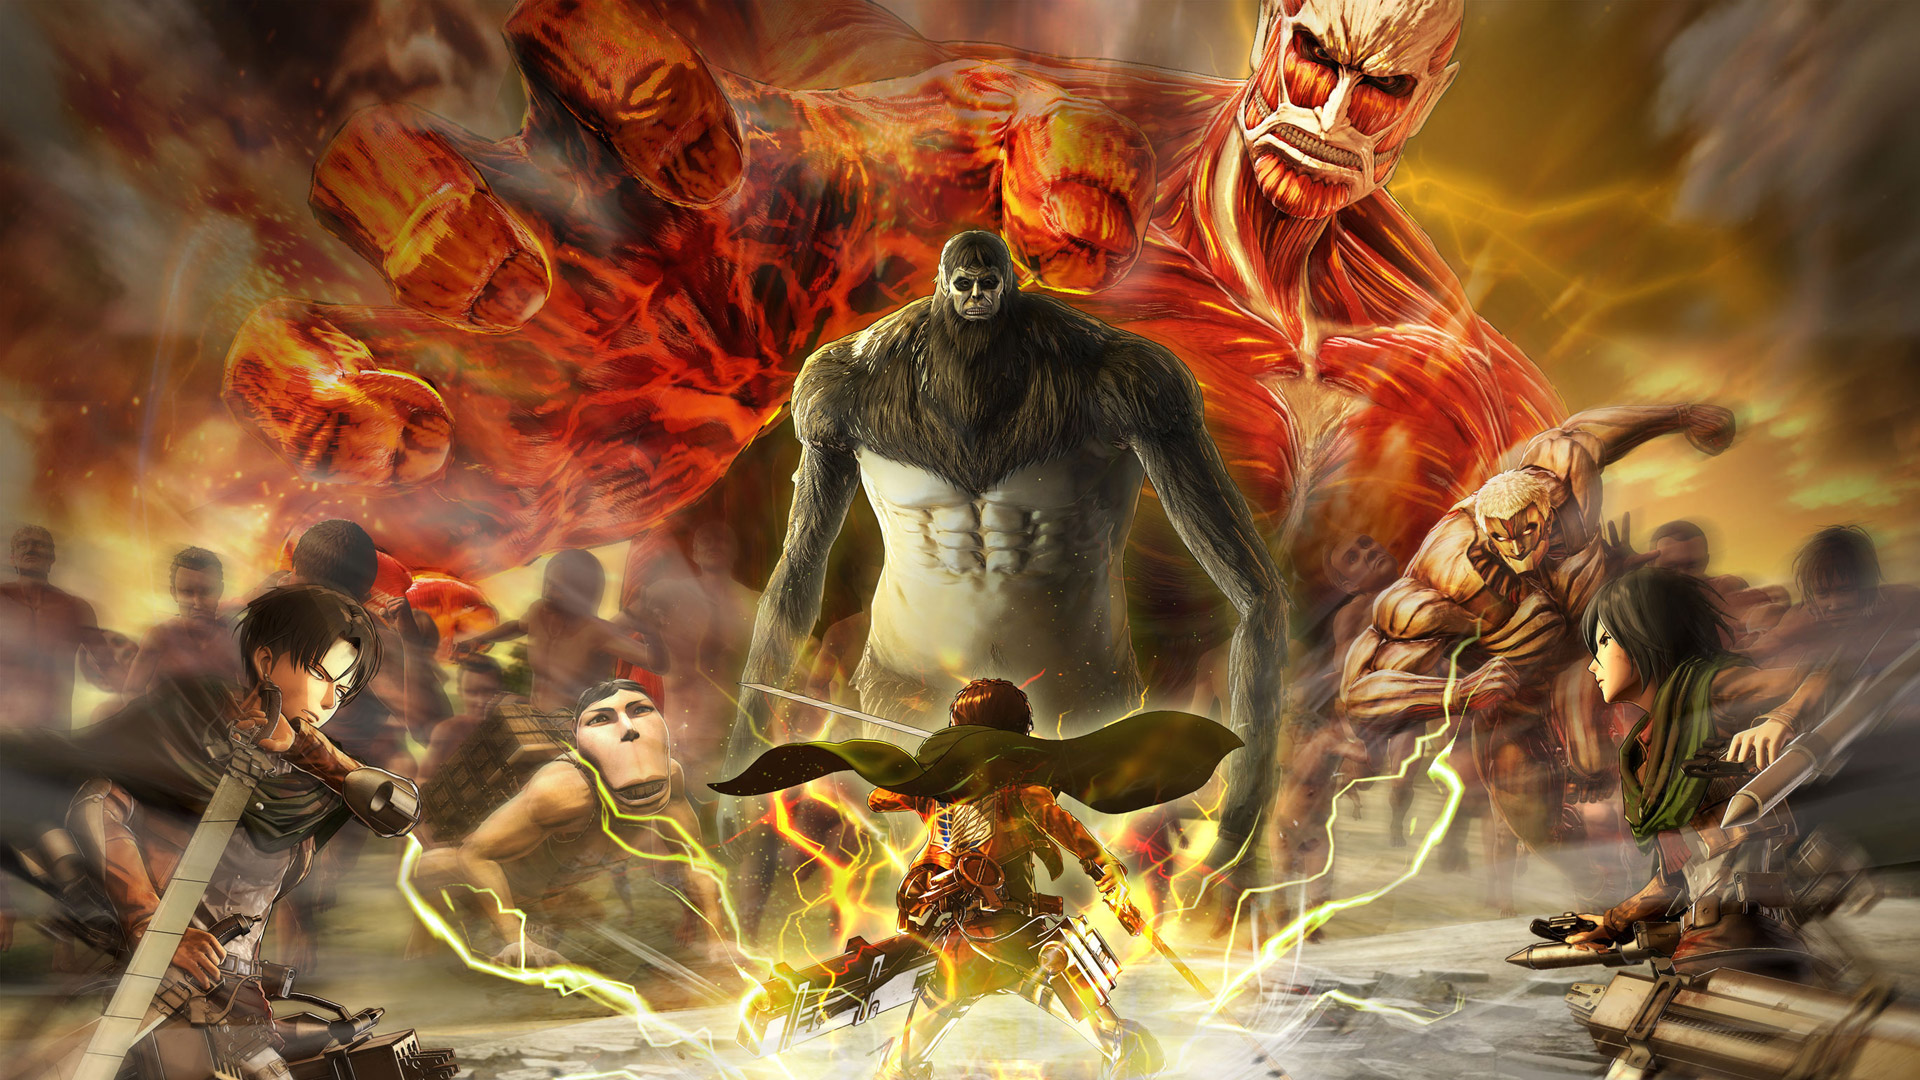 Free Attack On Titan 2 Wallpaper In Attack On Titan 2 Final Battle Game 1920x1080 Wallpaper Teahub Io